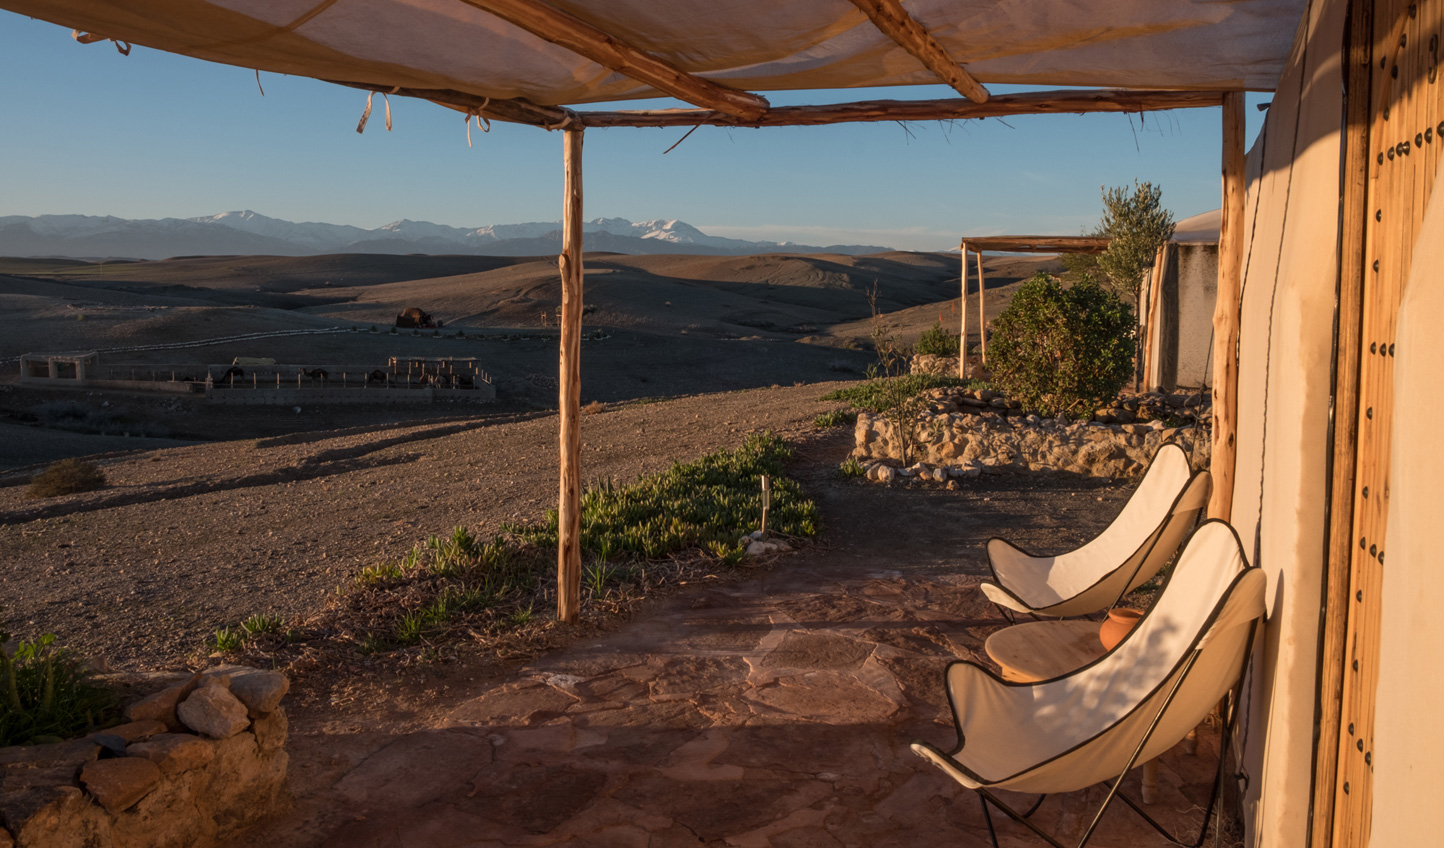 Sit out on your private porch and watch the sun dip down into the desert